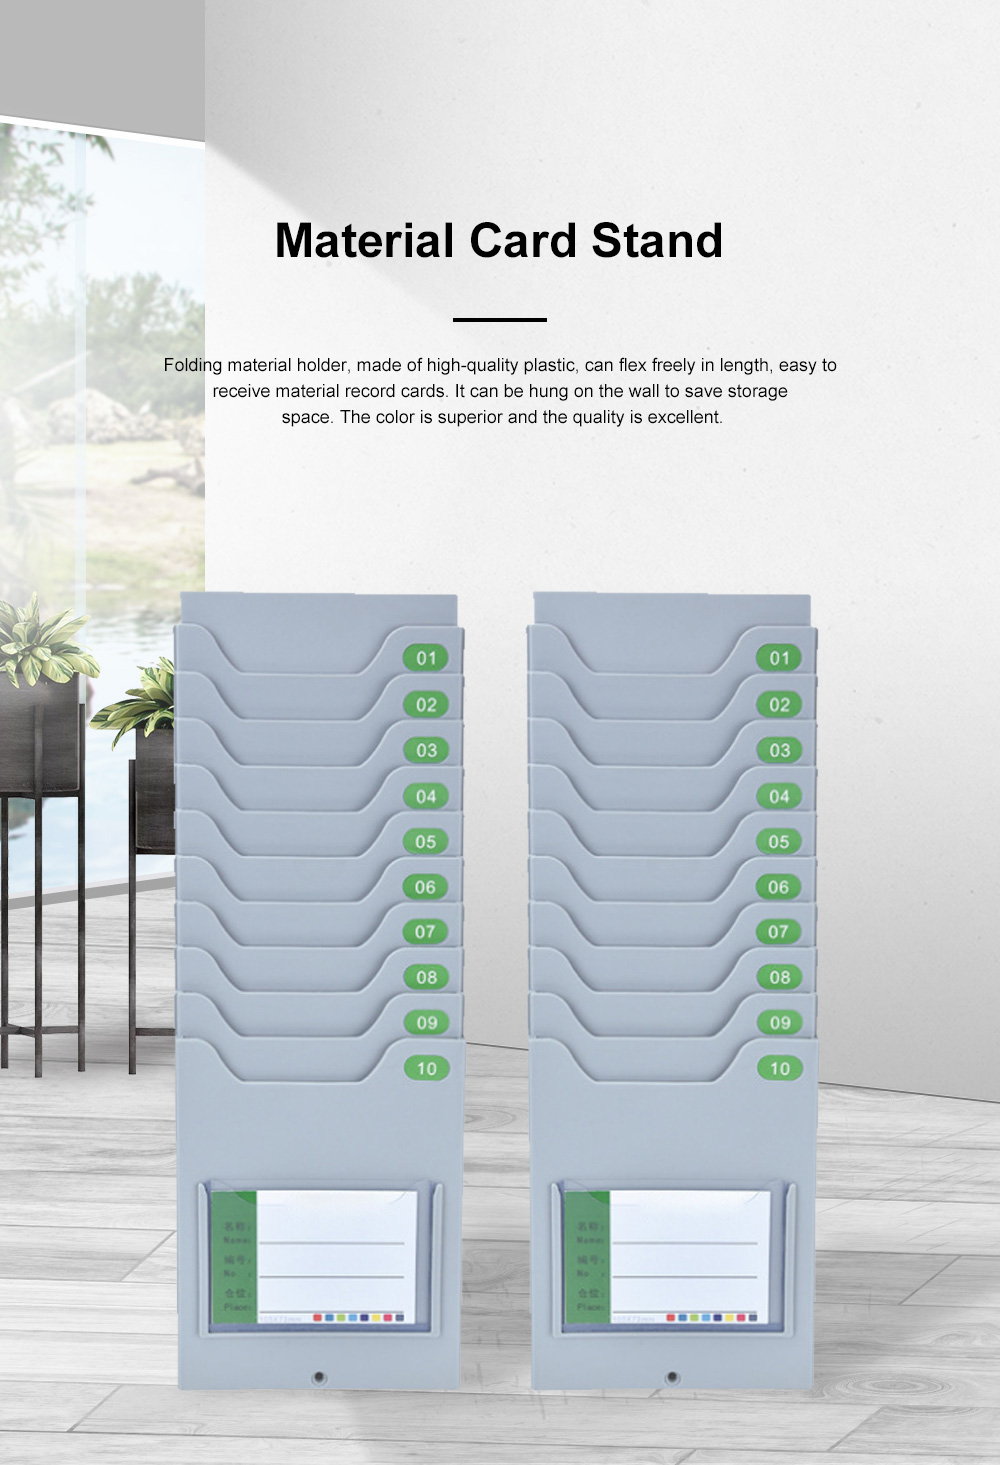 Material Card Stand Warehouse Material Card Rack Stand Card Bag Stock Card Card Board 0